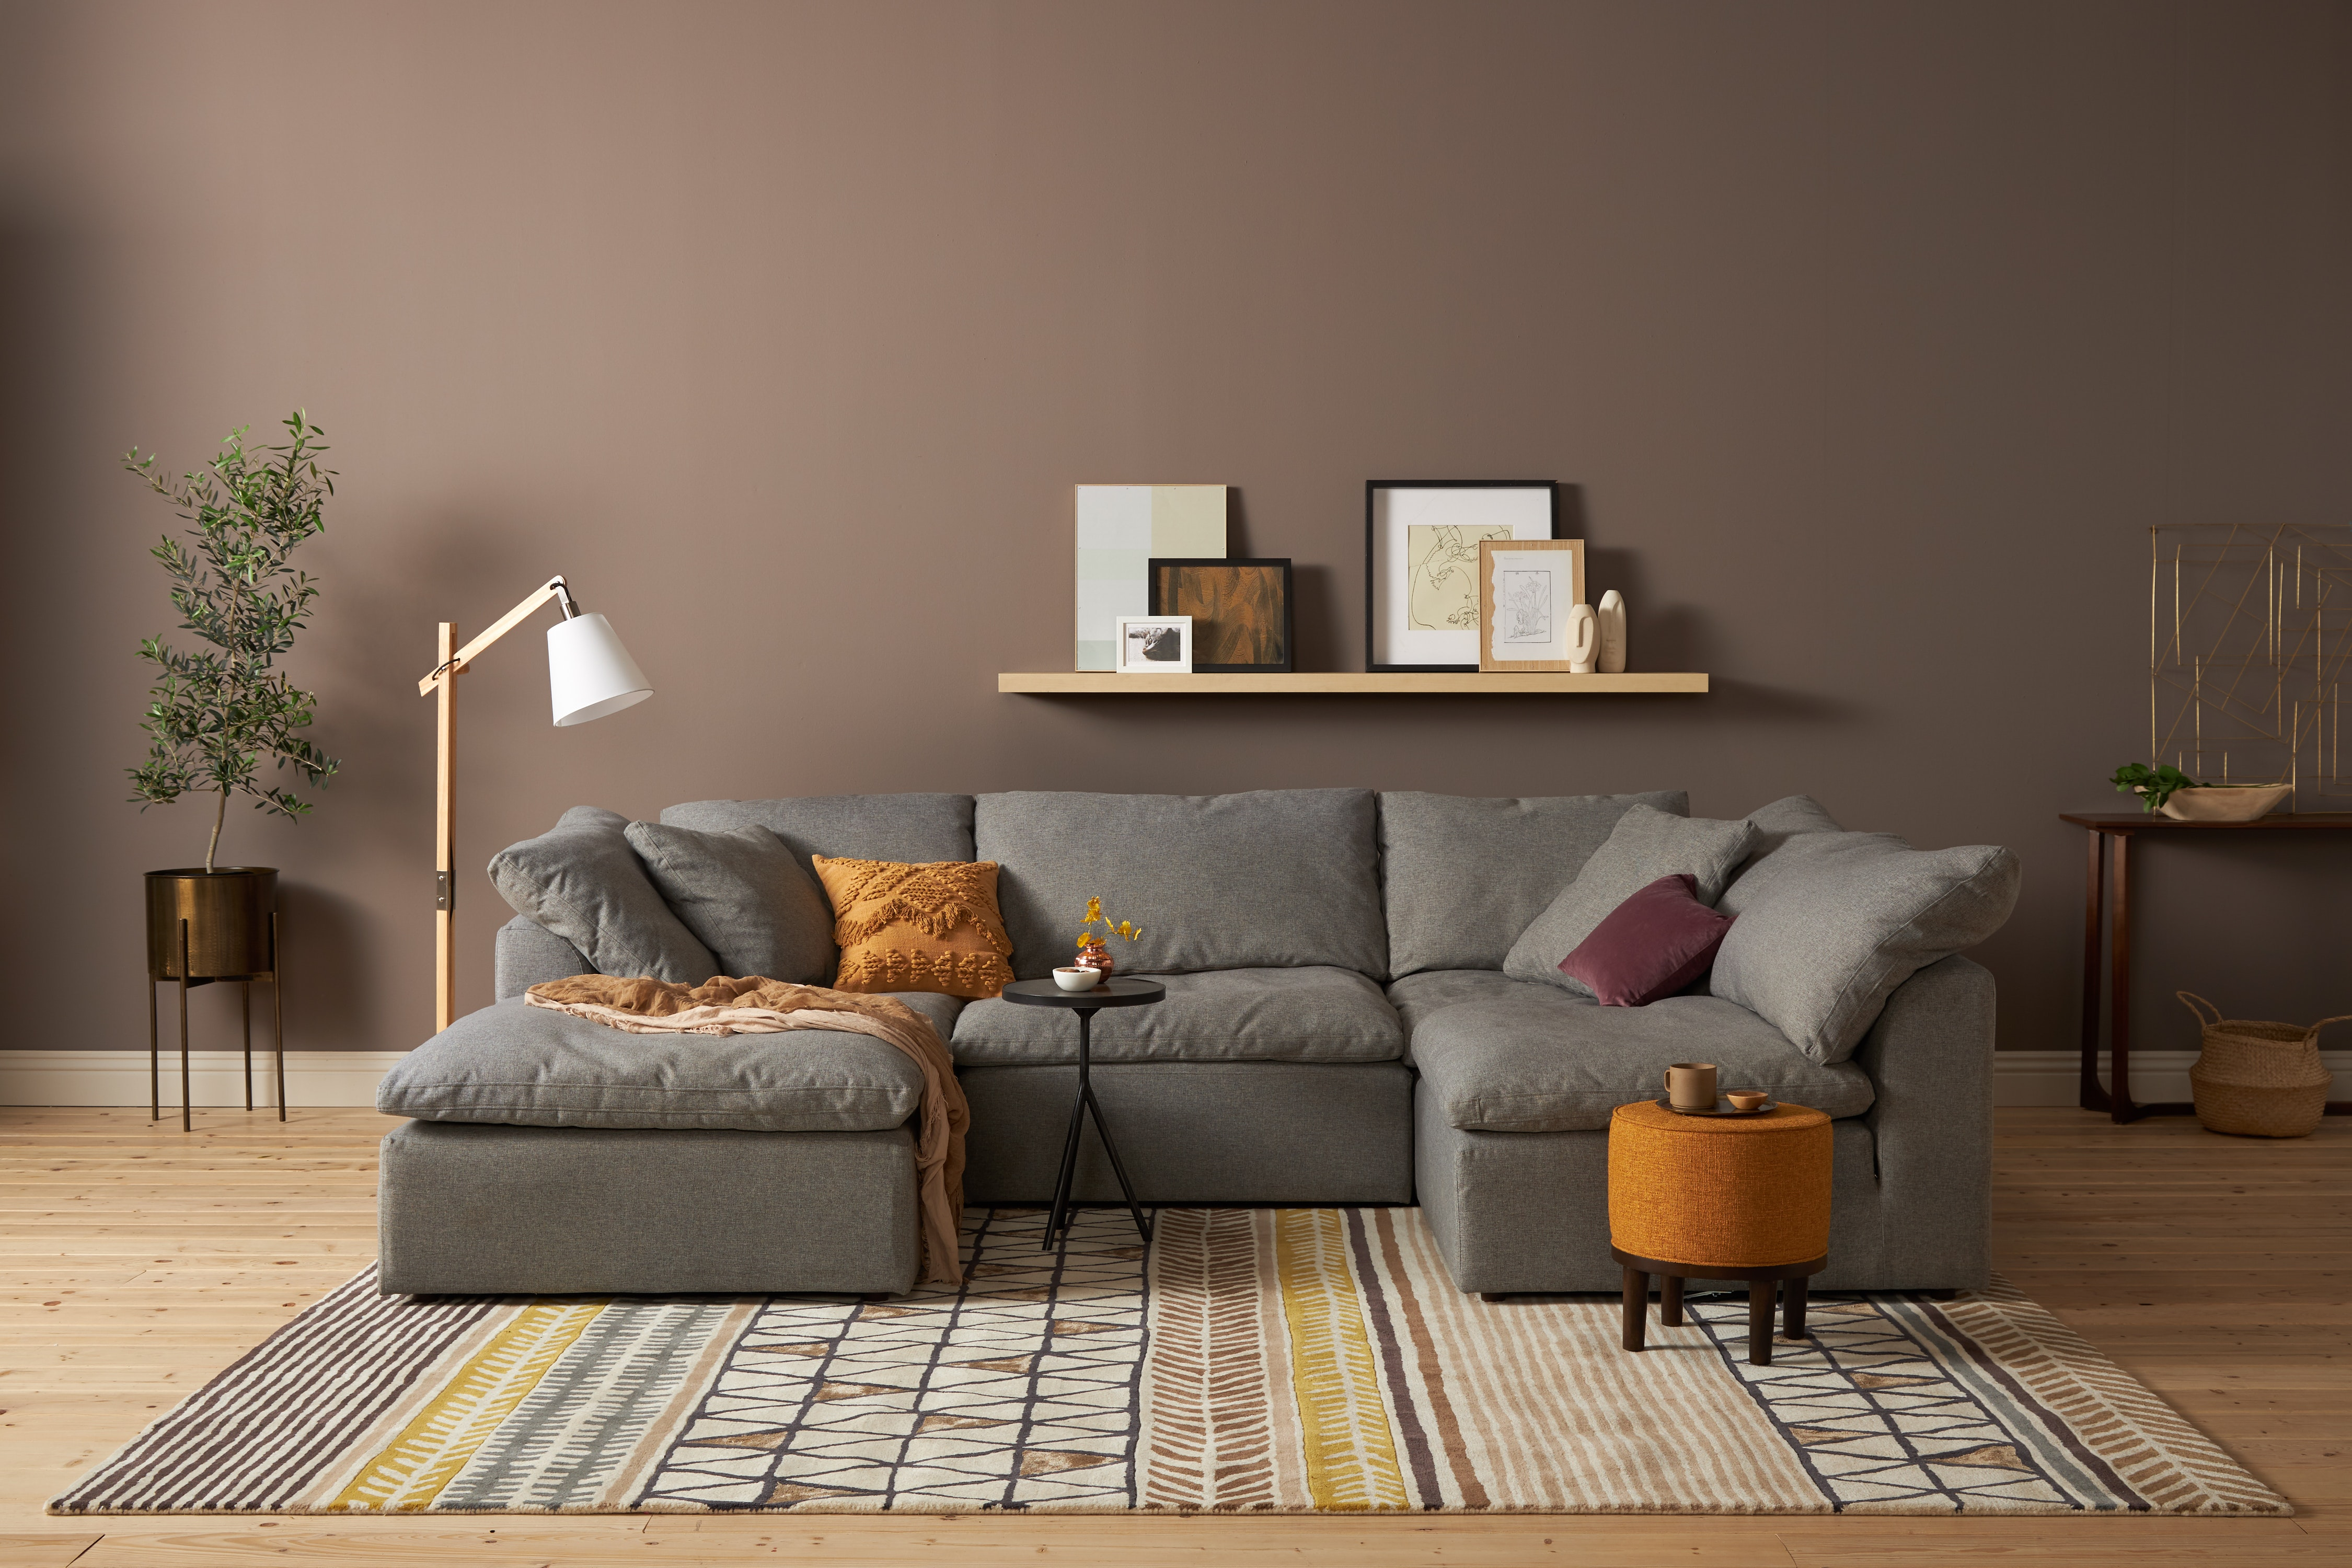 Peachy Bryant U Sofa Bumper Sectional 5 Piece Bralicious Painted Fabric Chair Ideas Braliciousco